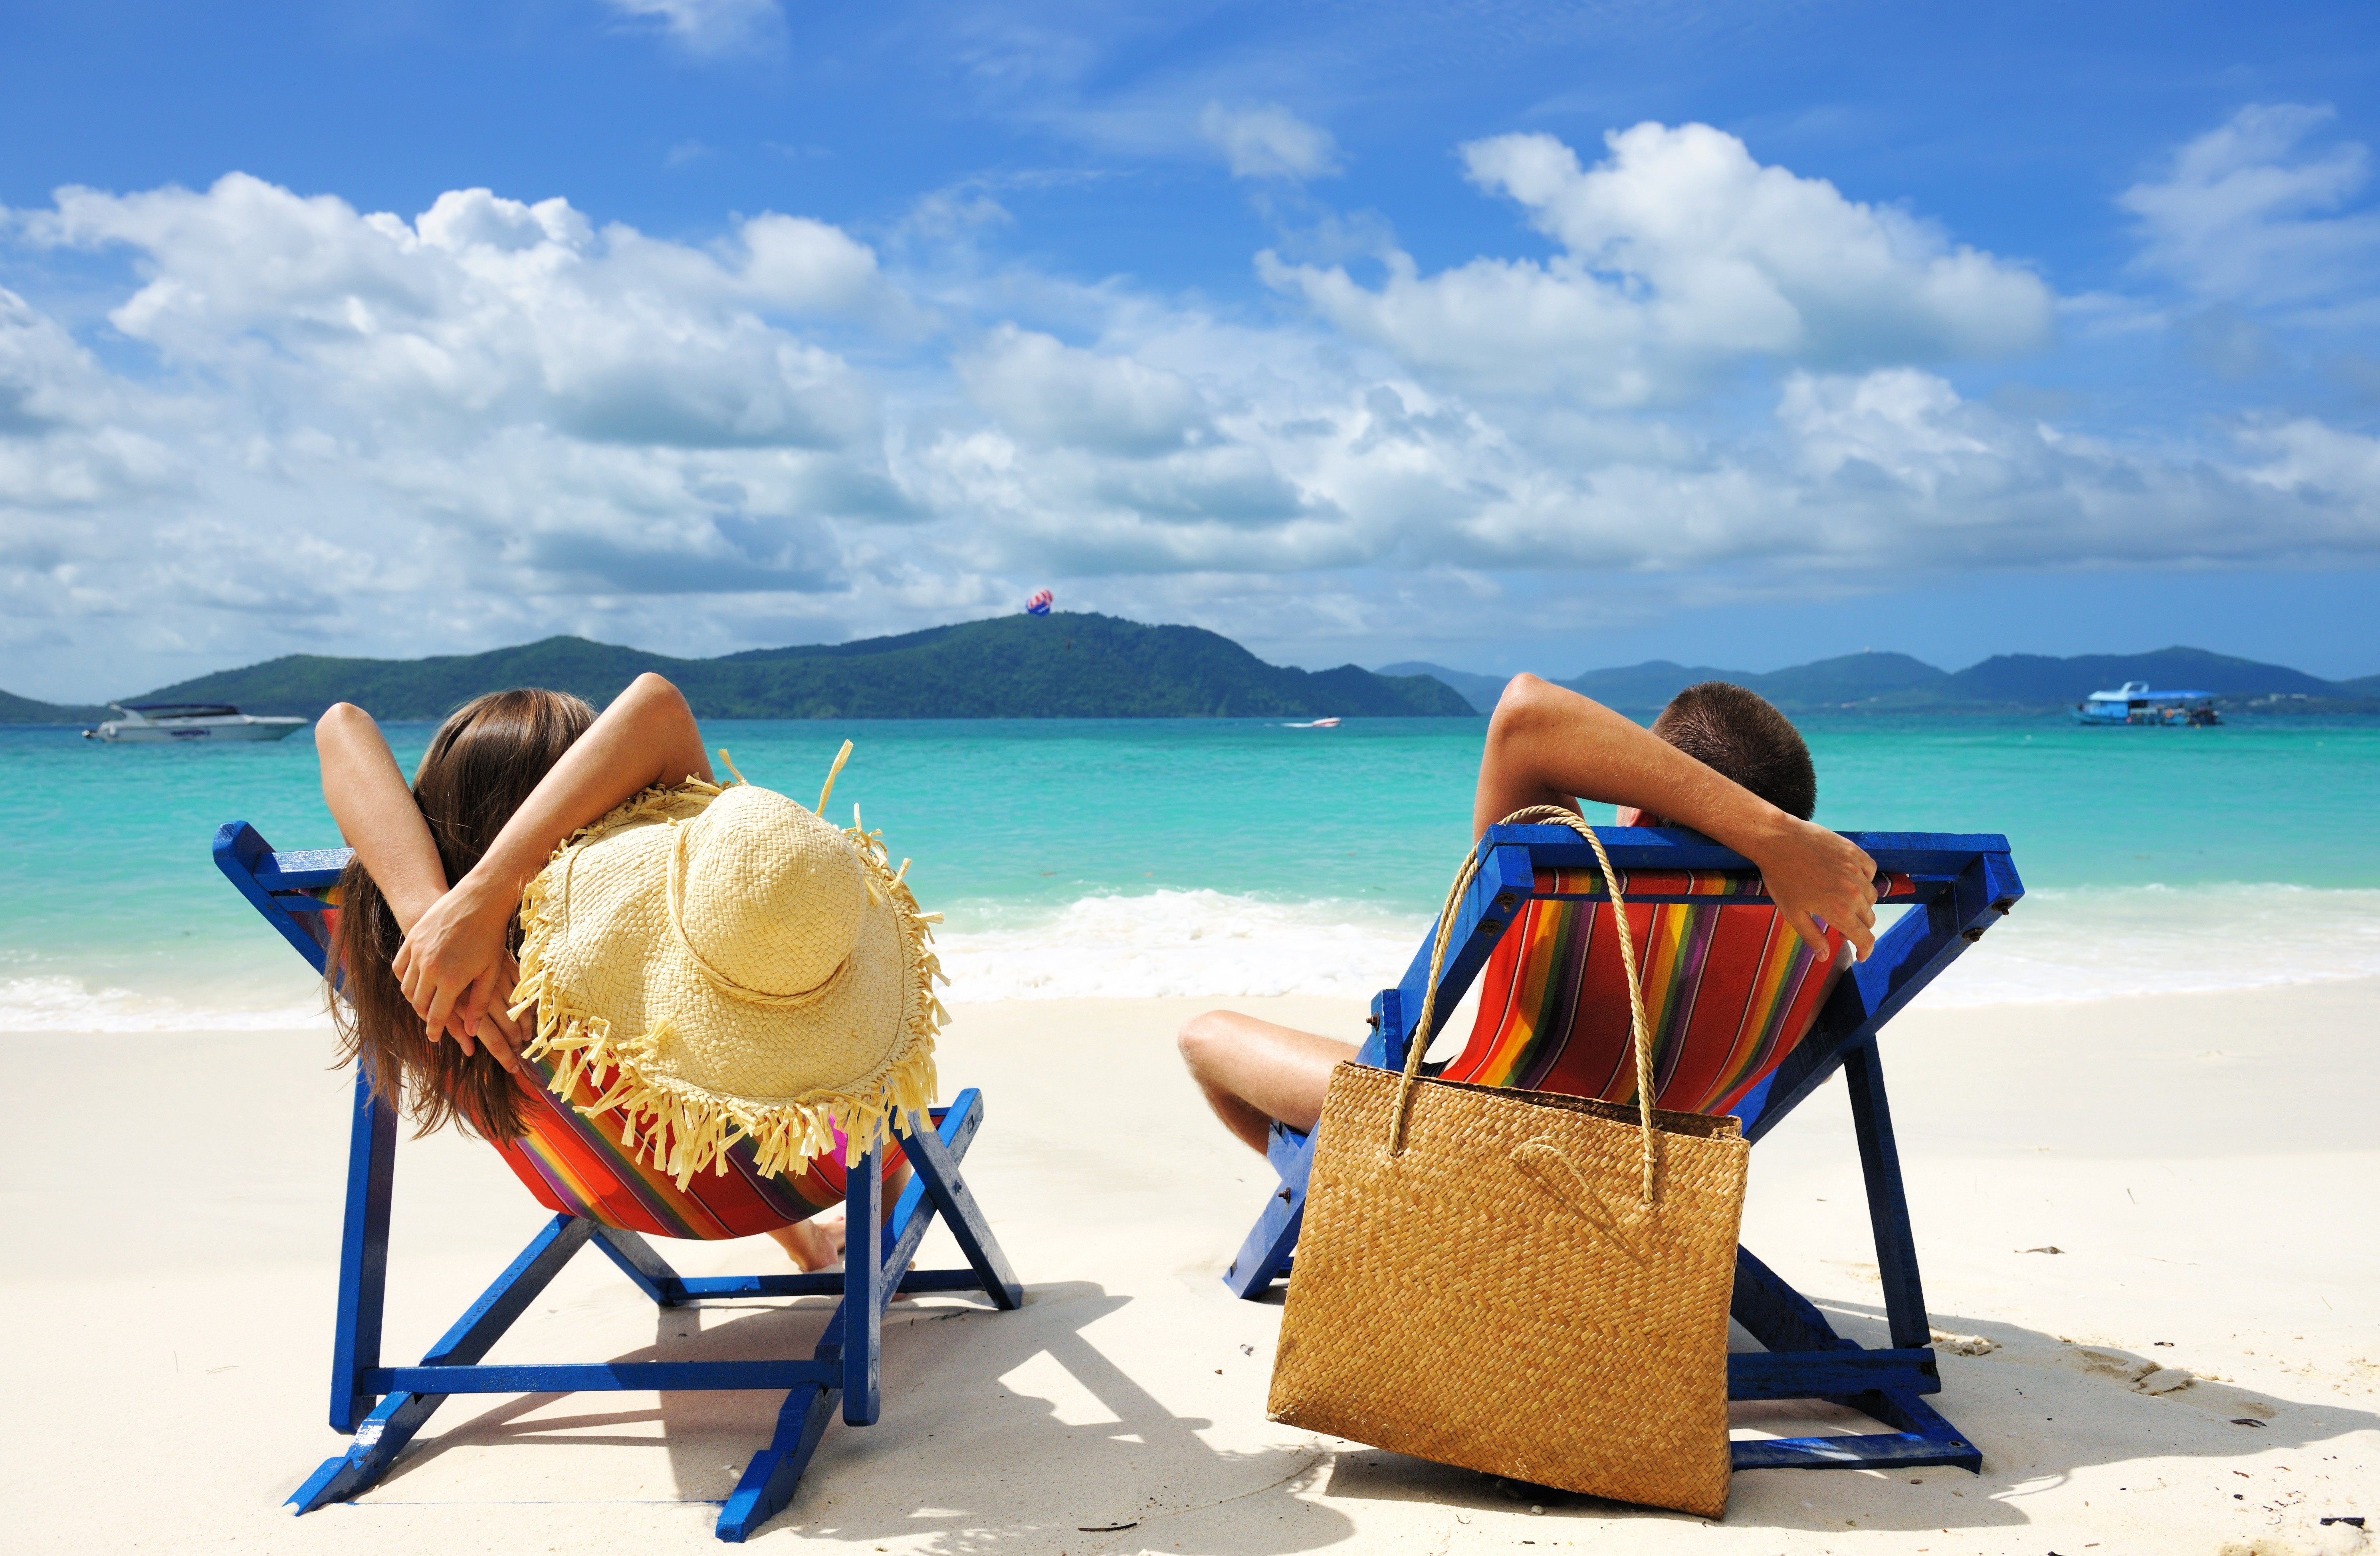 Download Beach Vacation Wallpaper Gallery